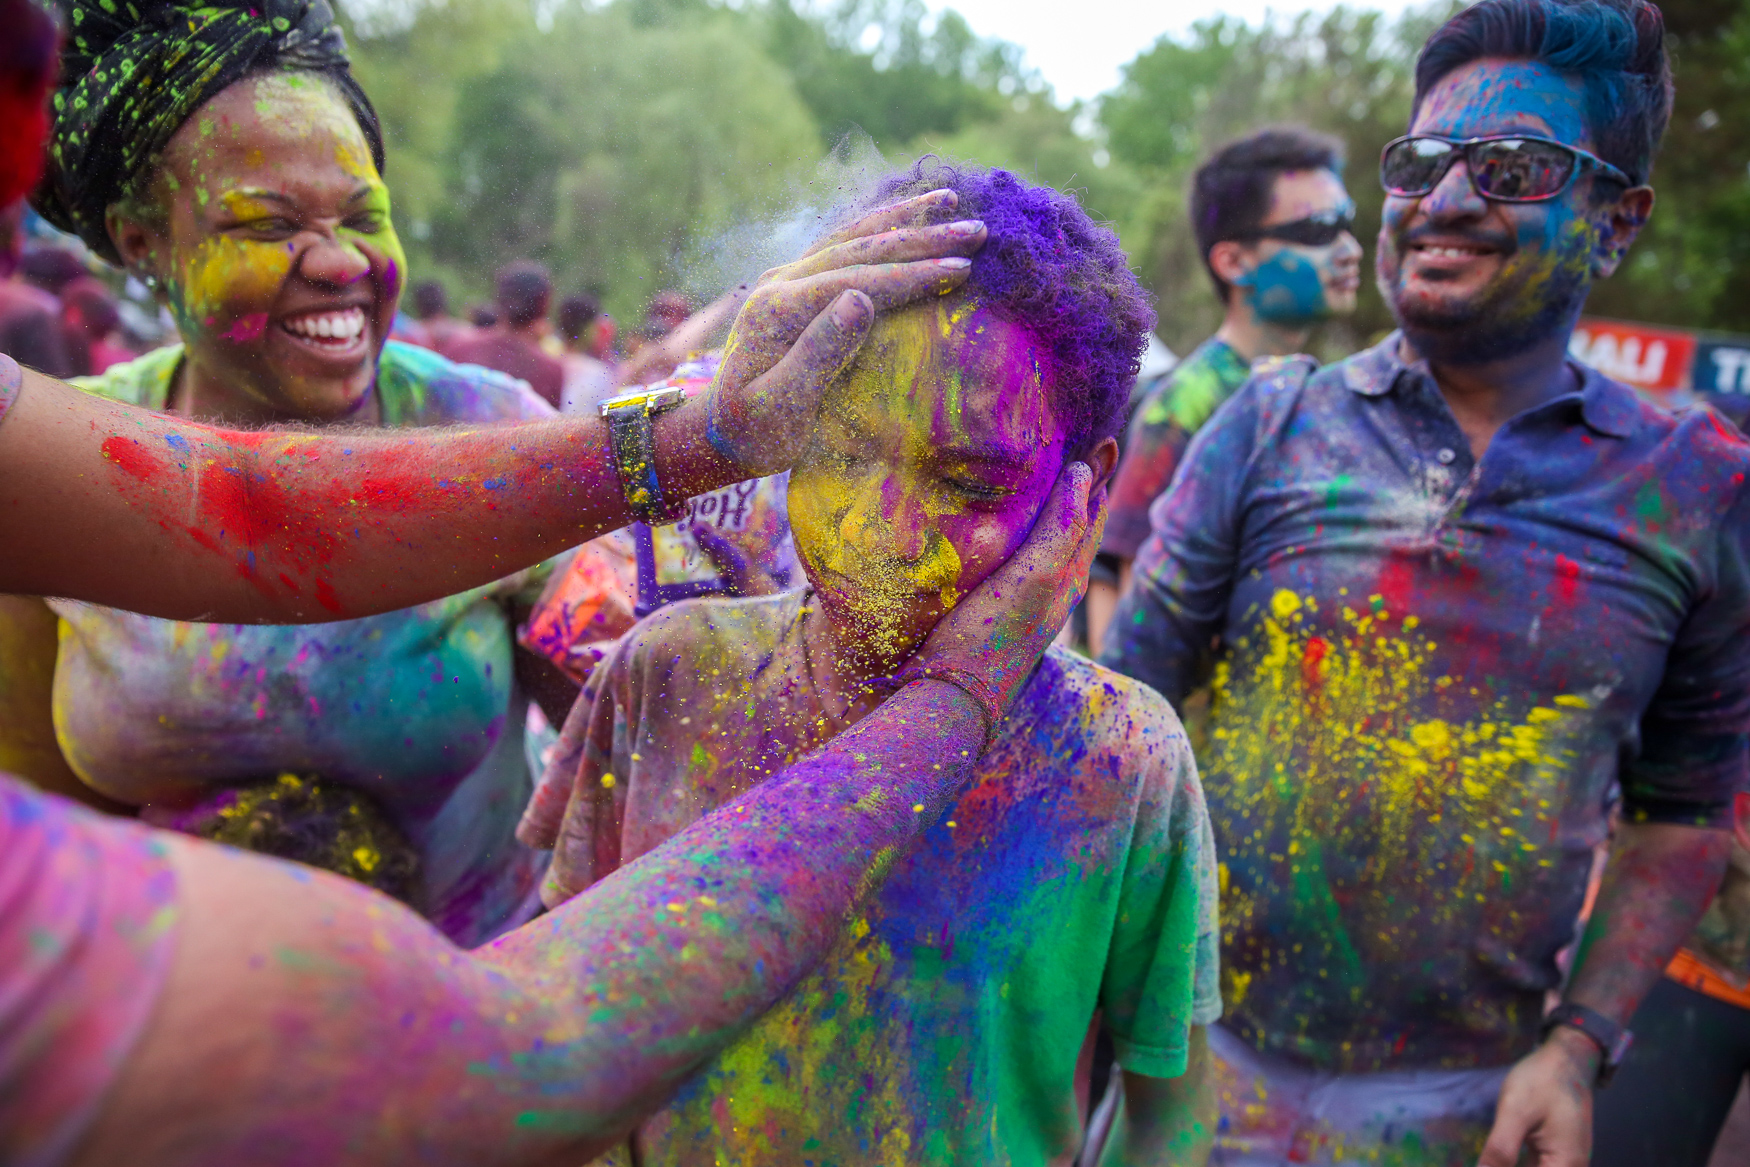 Revelers coat a child in colored powder at Holi, a Hindu festival at ISCKON of D.C. on March 6, 2018.{ }(Amanda Andrade-Rhoades/DC Refined)